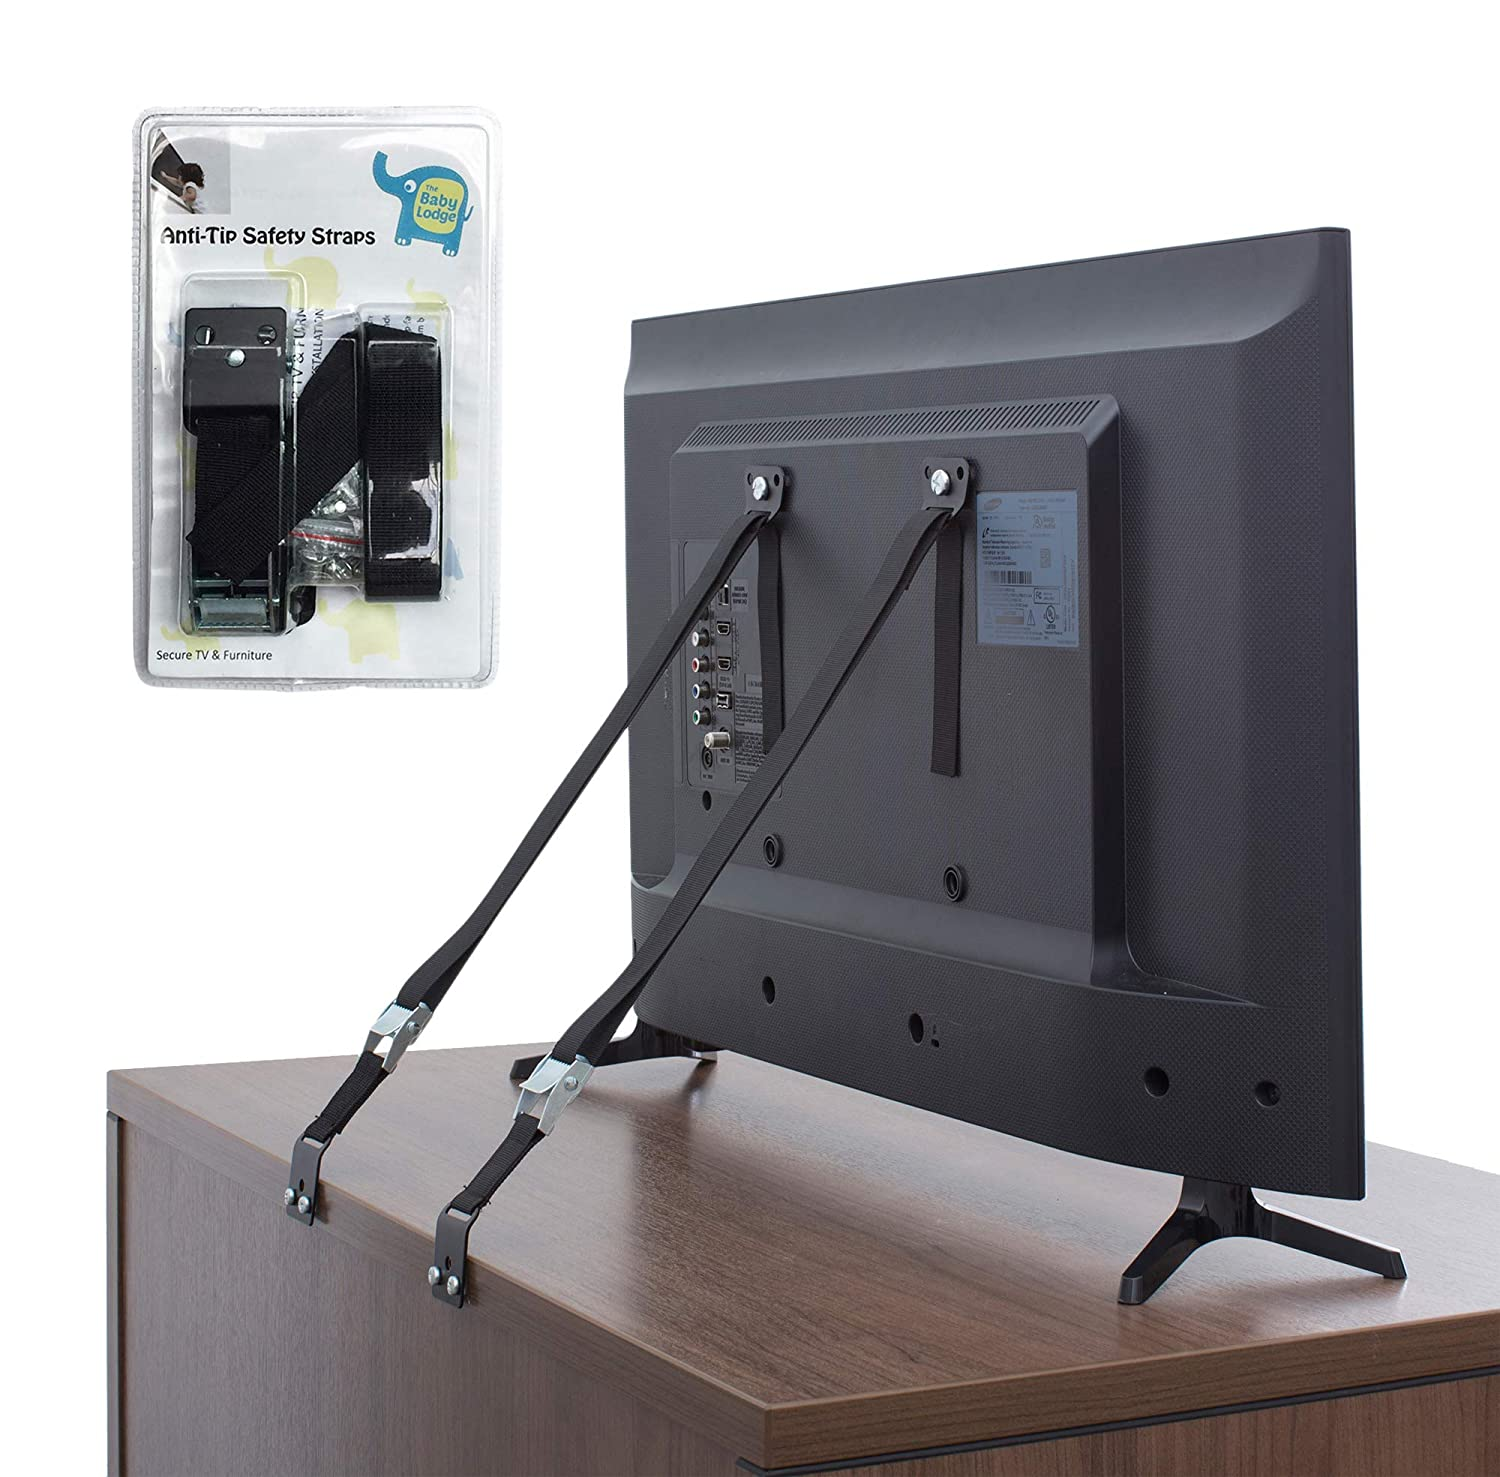 The Baby Lodge TV and Furniture Anti Tip Straps - Safety Furniture Wall Anchors for Baby Proofing Flat Screen TV, Dresser, Bookcase, Cabinets, and More - All Metal, No Plastic Parts (2 Pack, Black)